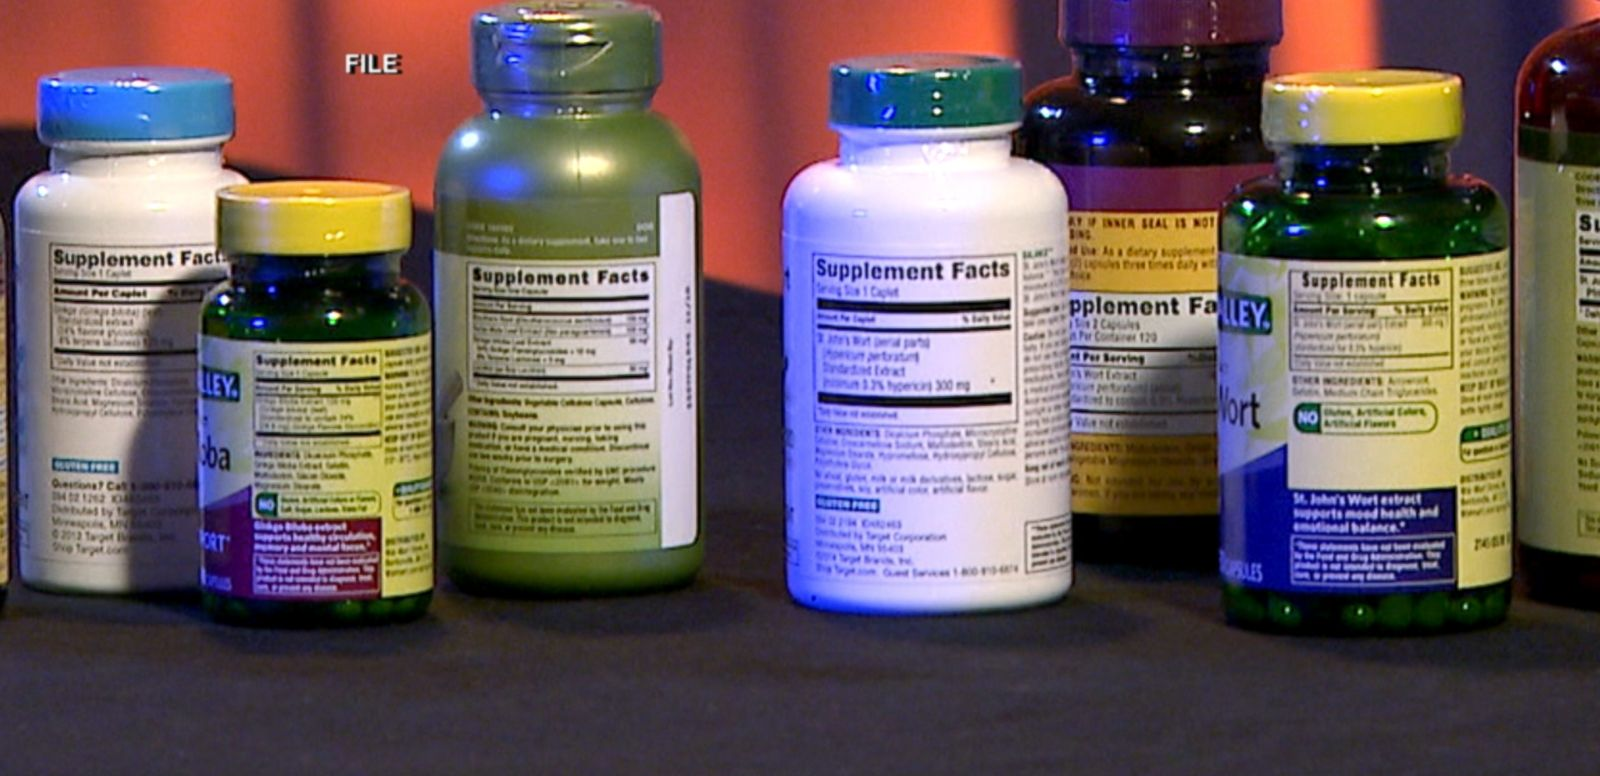 VIDEO: The nation's largest seller of dietary supplements says its making the change to ensure quality and accuracy.